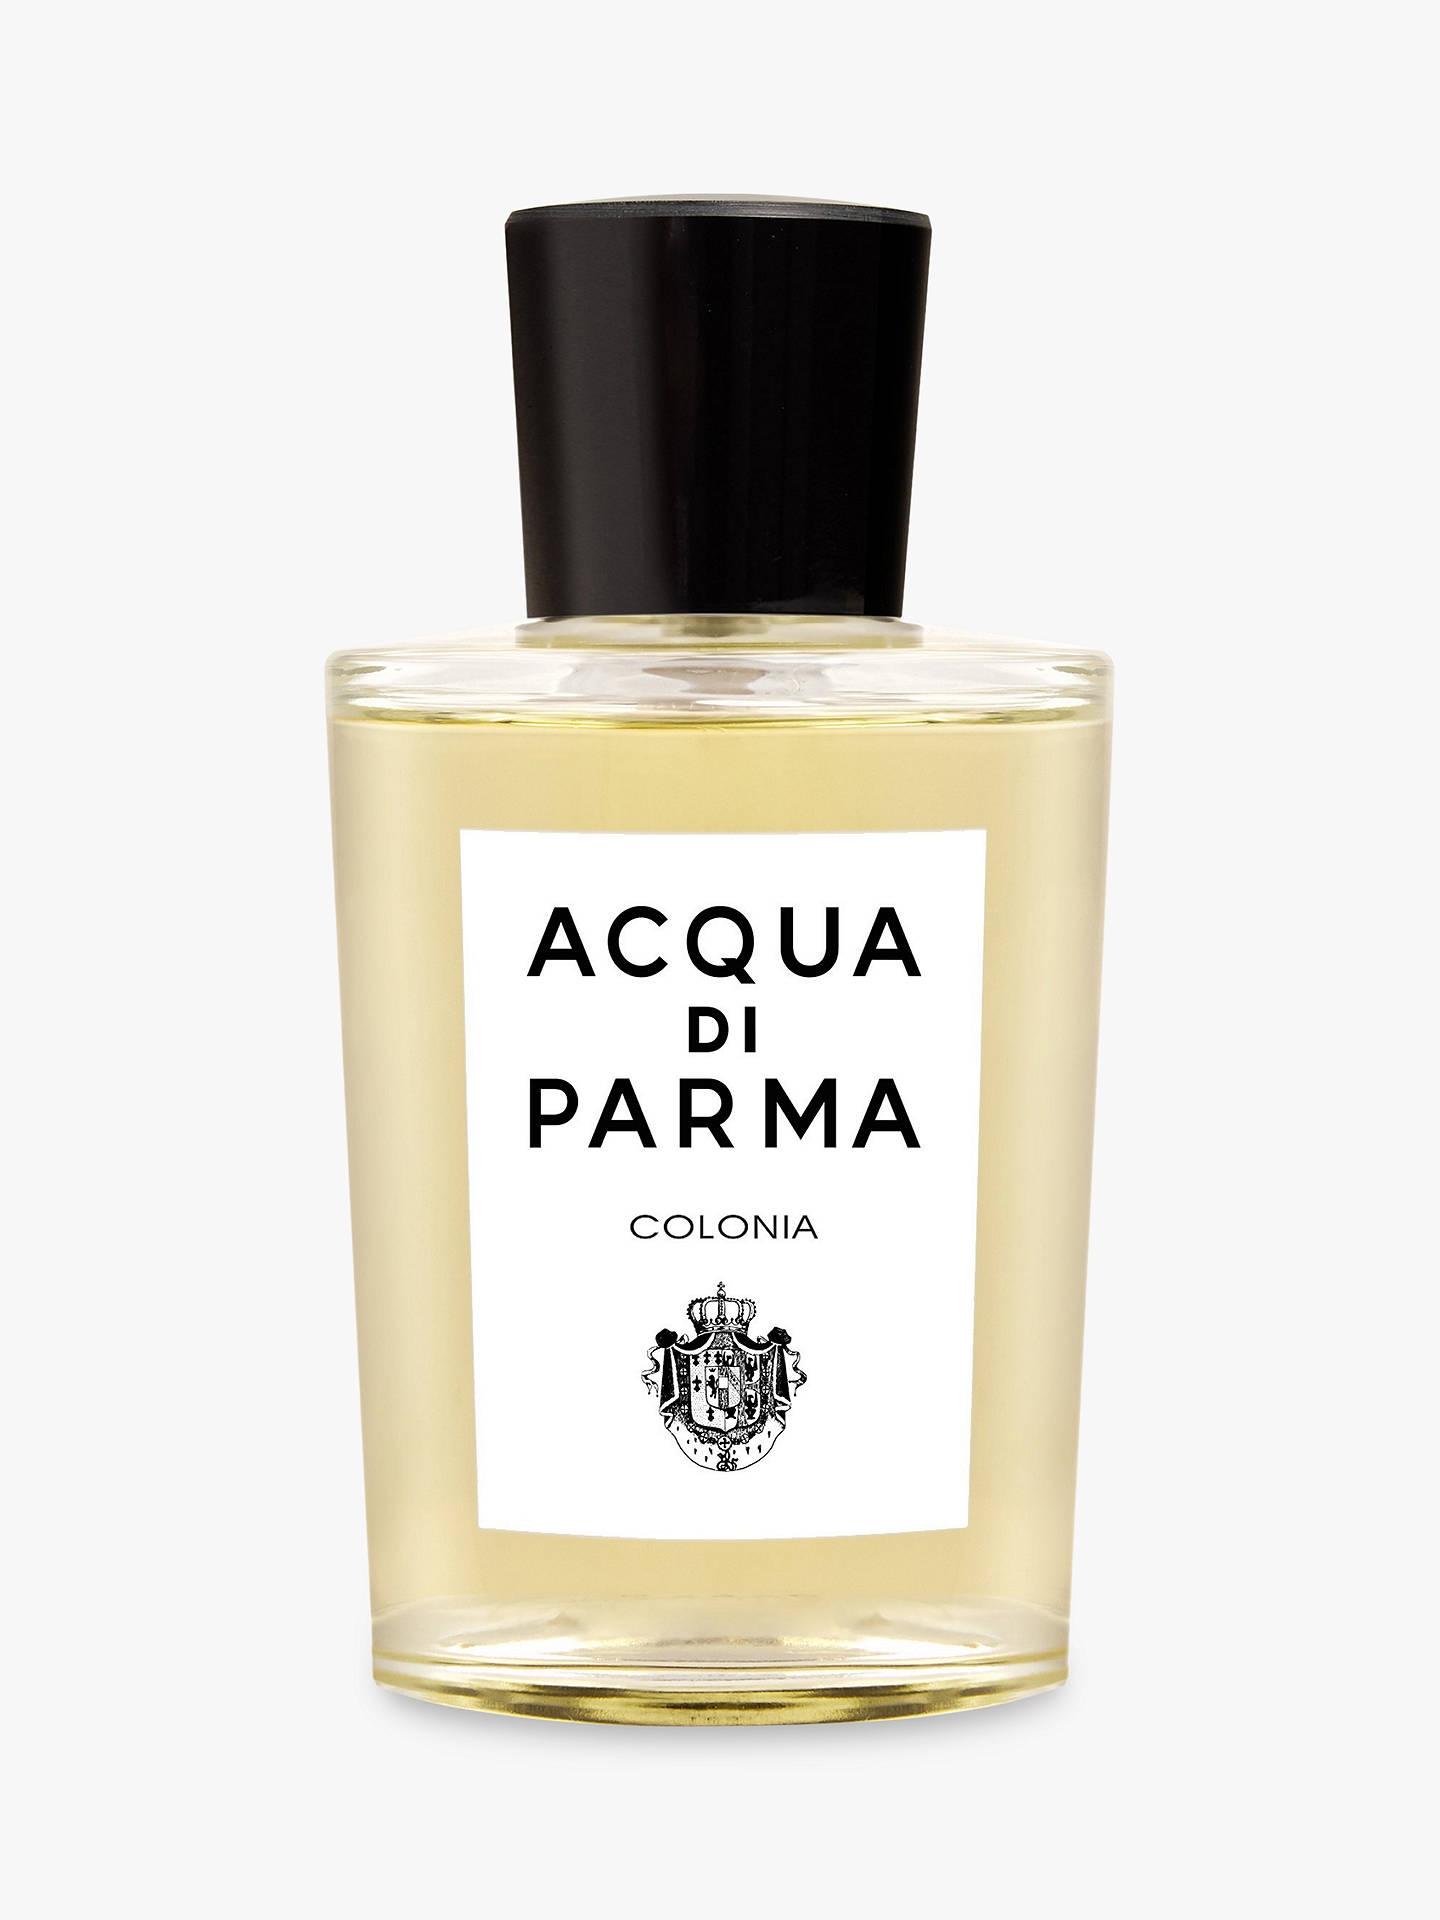 Buy Acqua di Parma Colonia Eau de Cologne Spray, 180ml Online at johnlewis.com